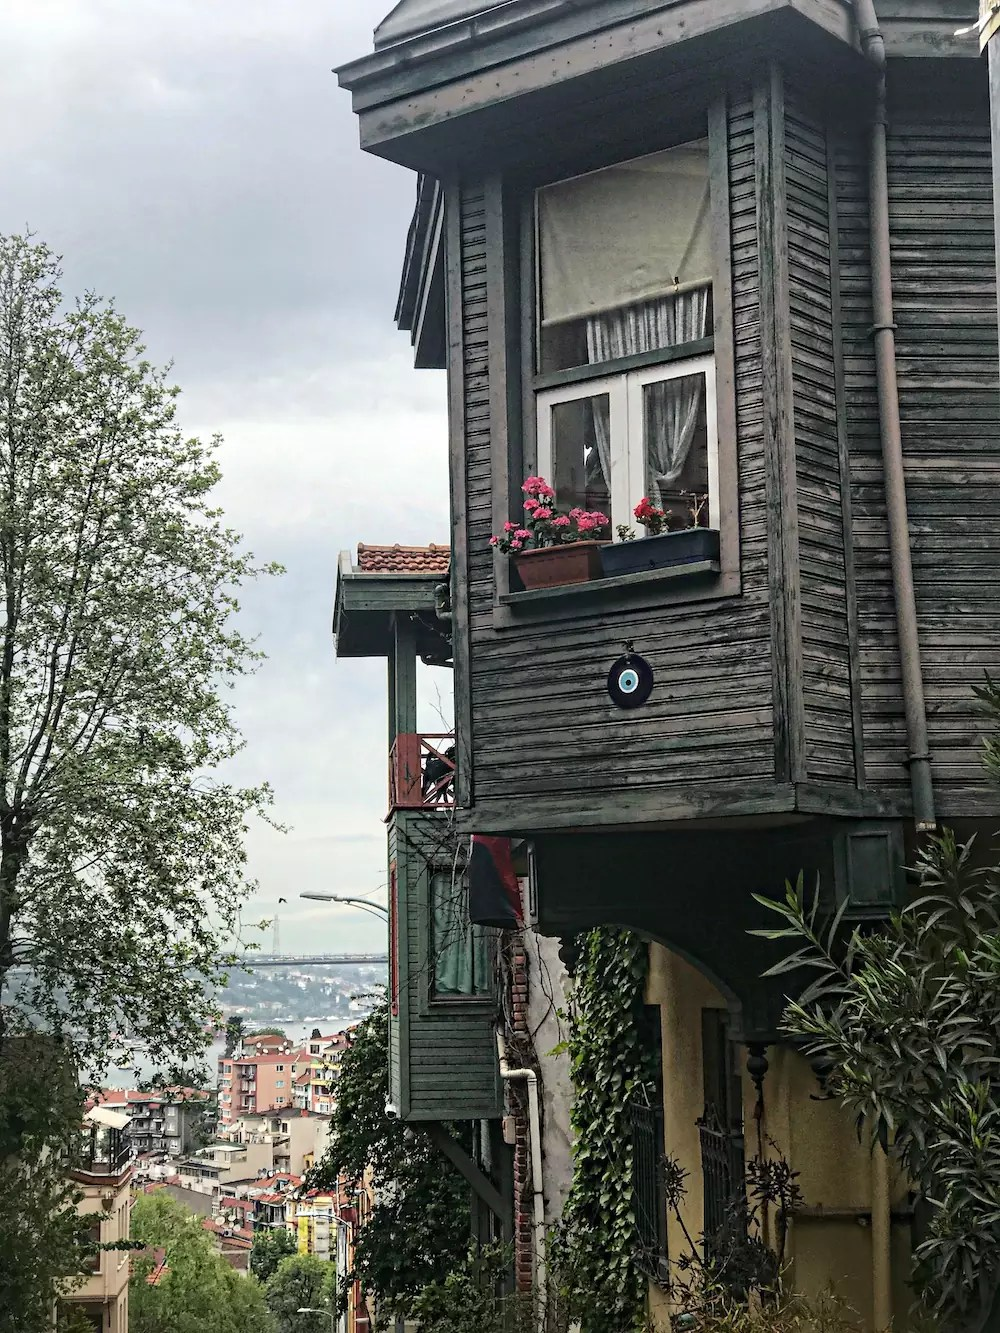 tourist-guide-for-istanbul-5-hidden-places-in-istanbul-aley-girl-travel-fashion-technology-blog-kuzguncuk-evleri